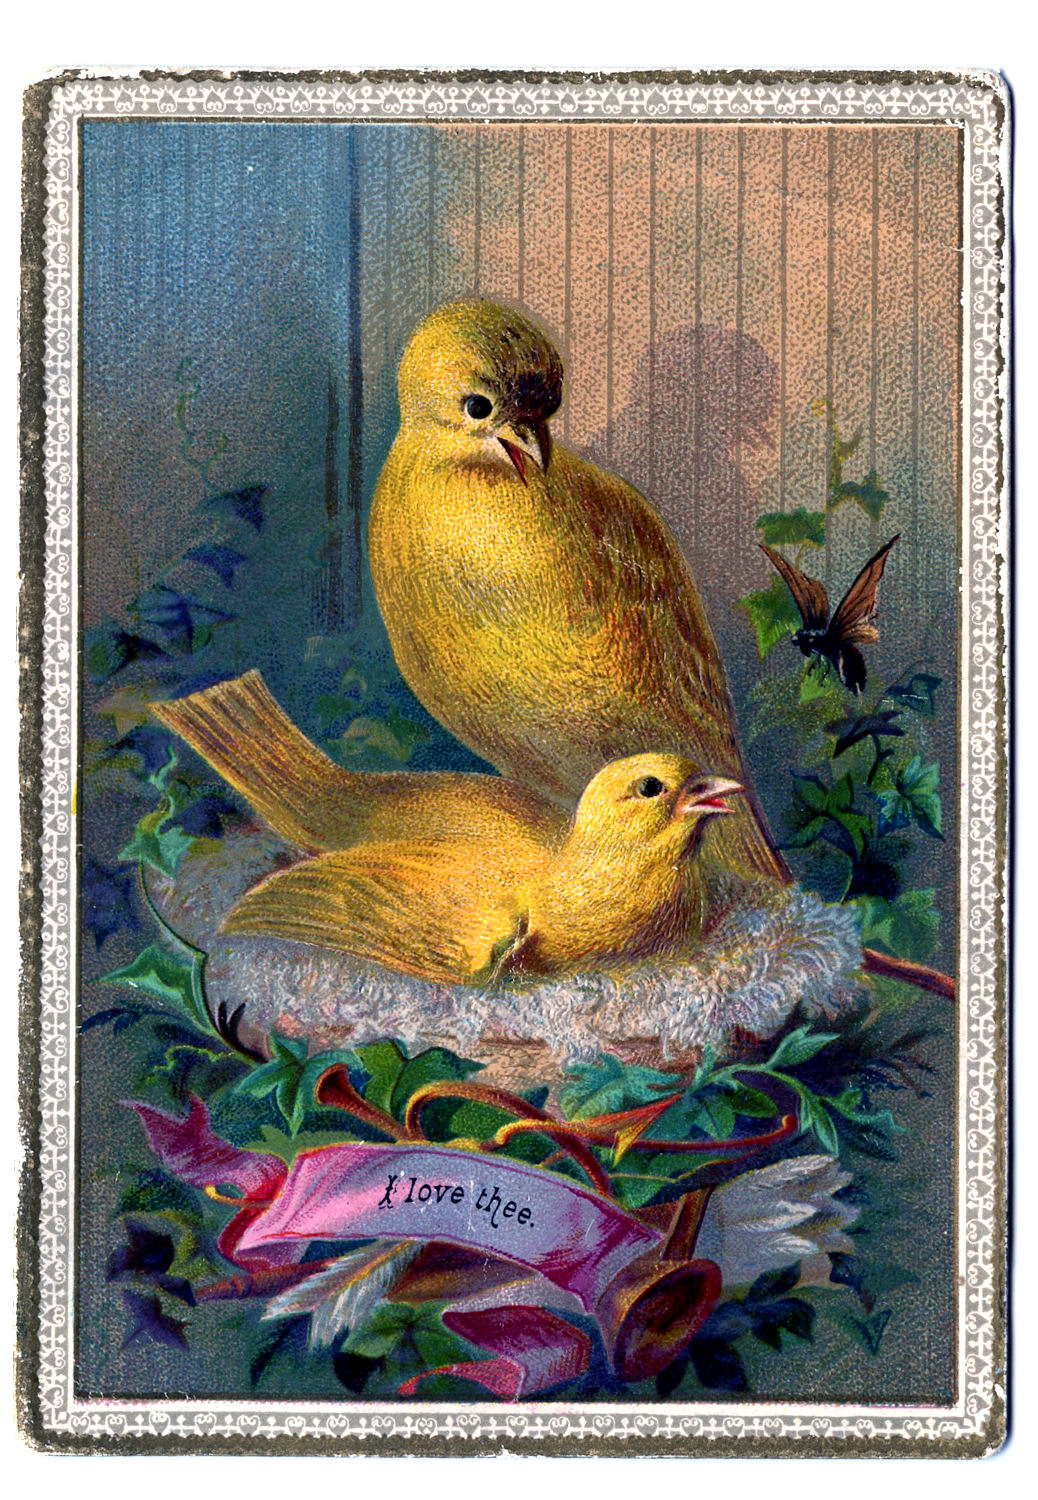 Two Canary Birds in Nest Image